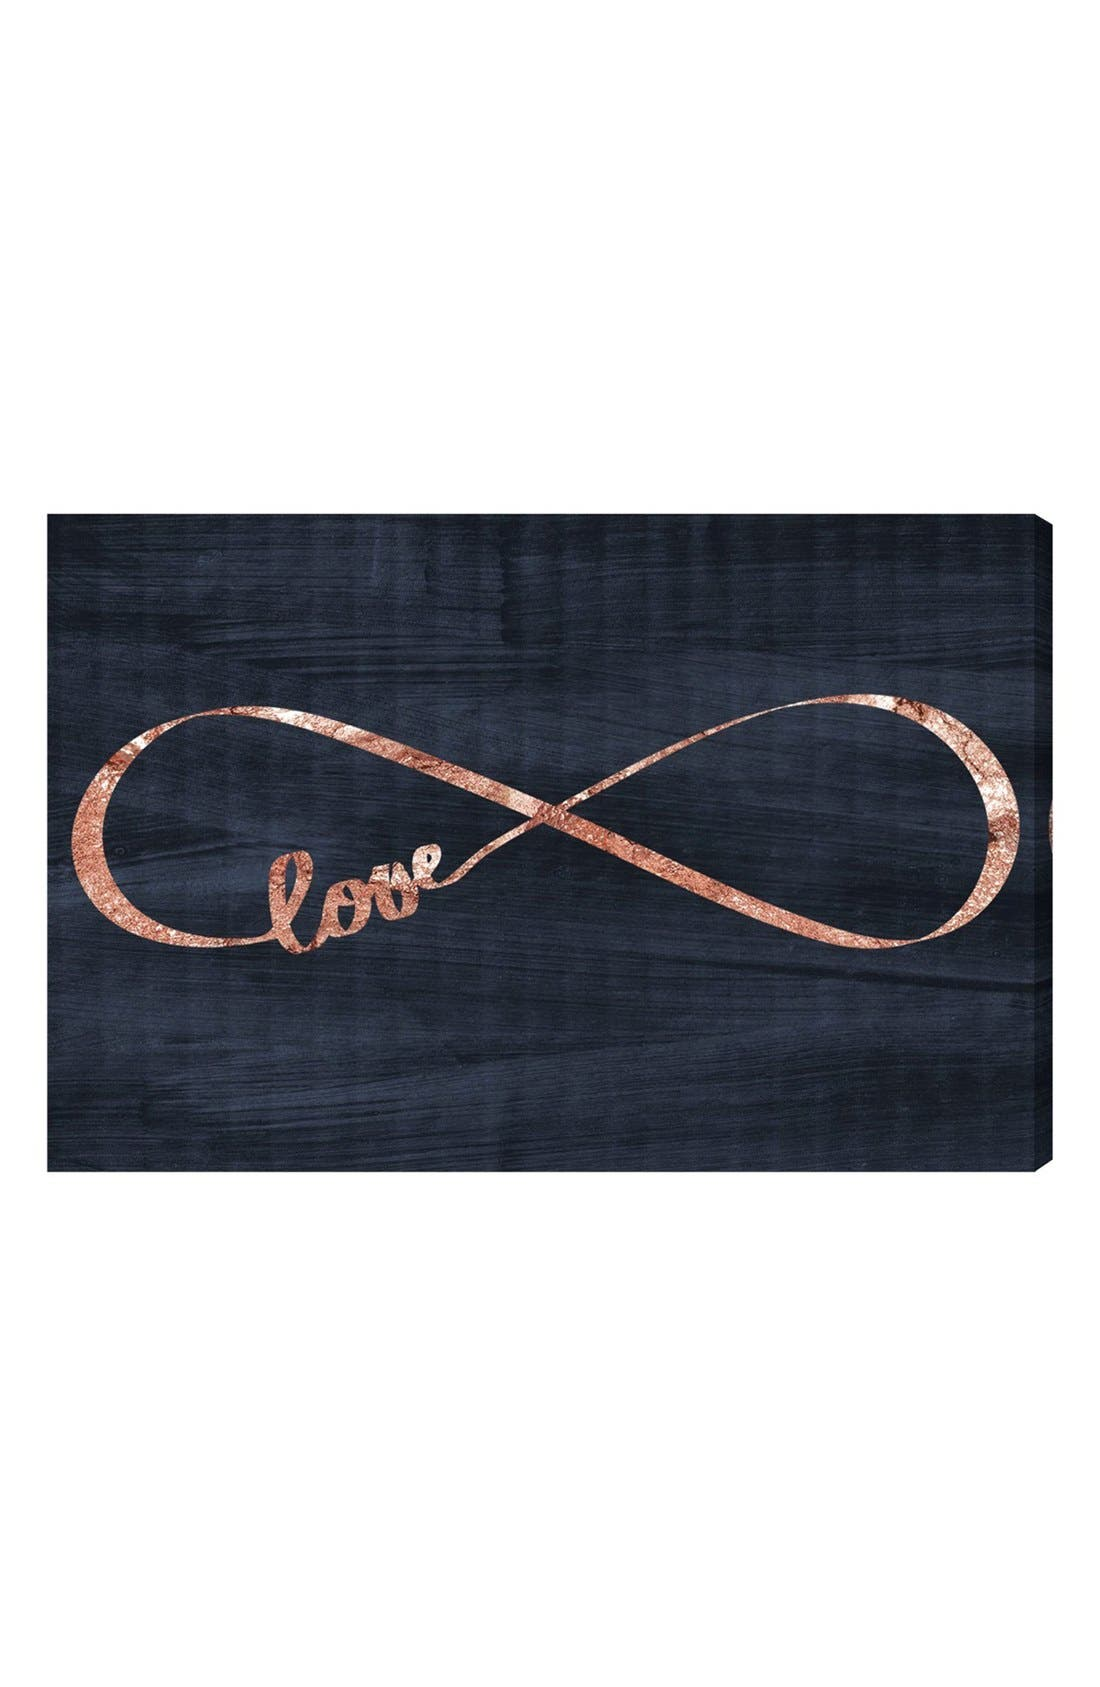 Alternate Image 1 Selected - Oliver Gal 'Infinite Love' Canvas Wall Art